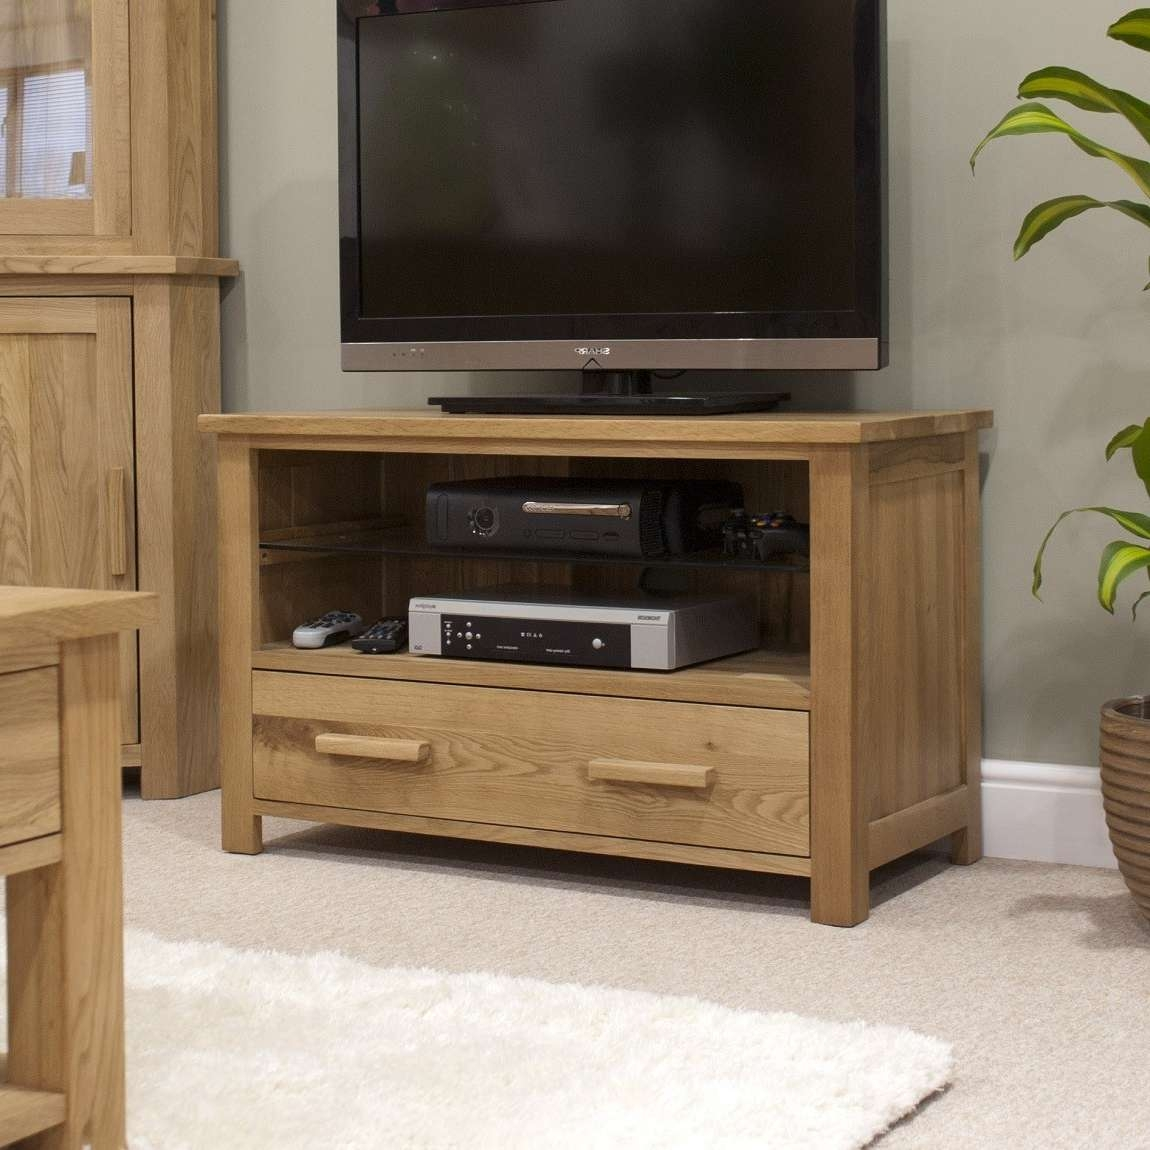 Opus Solid Oak Tv Cabinet | Oak Furniture Uk Pertaining To Oak Tv Cabinets (View 9 of 20)